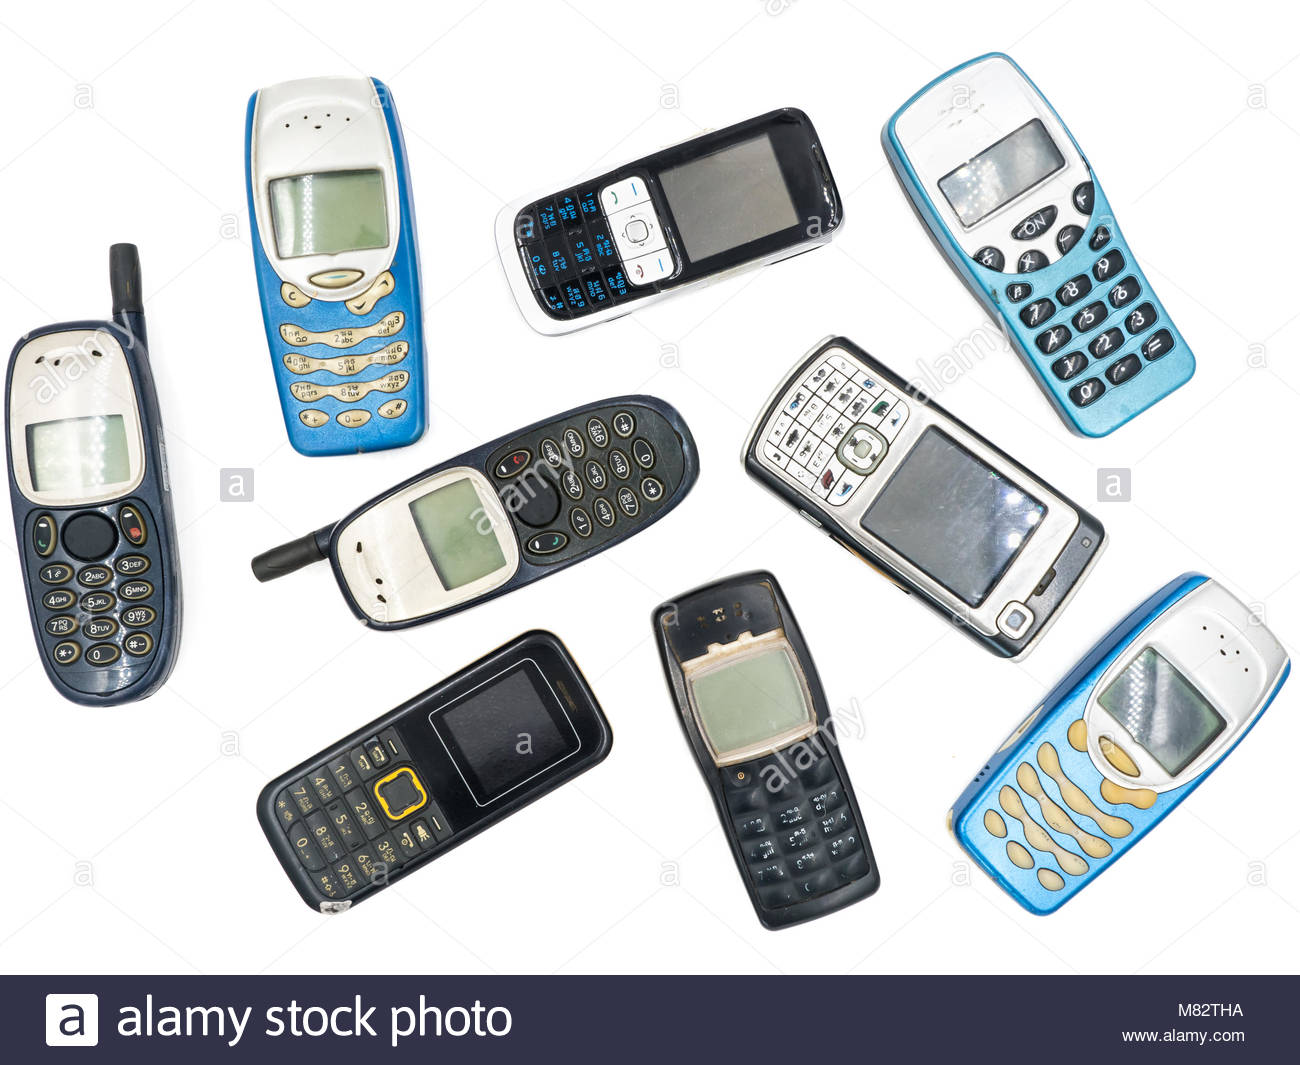 Old Mobile Phones Stock Photos Images Circuit Board From A Nokia 3310 Phone Photo Picture And Top View Of On White Background Image